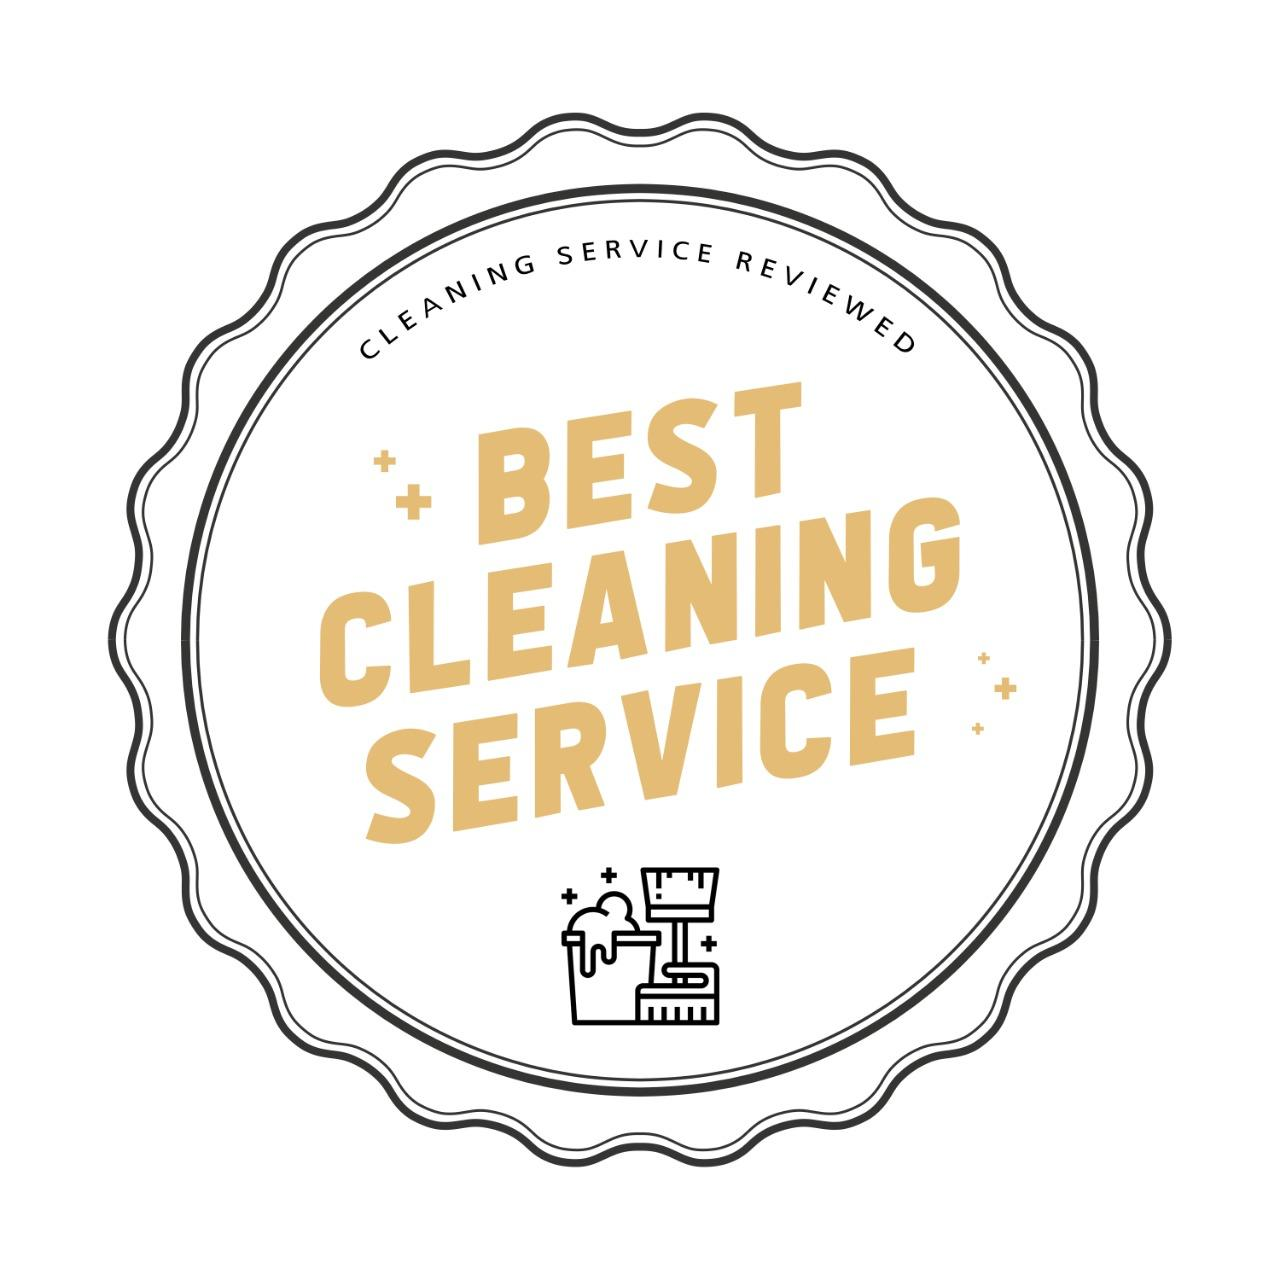 The 19 Best Options for Cleaning Services in Lagos